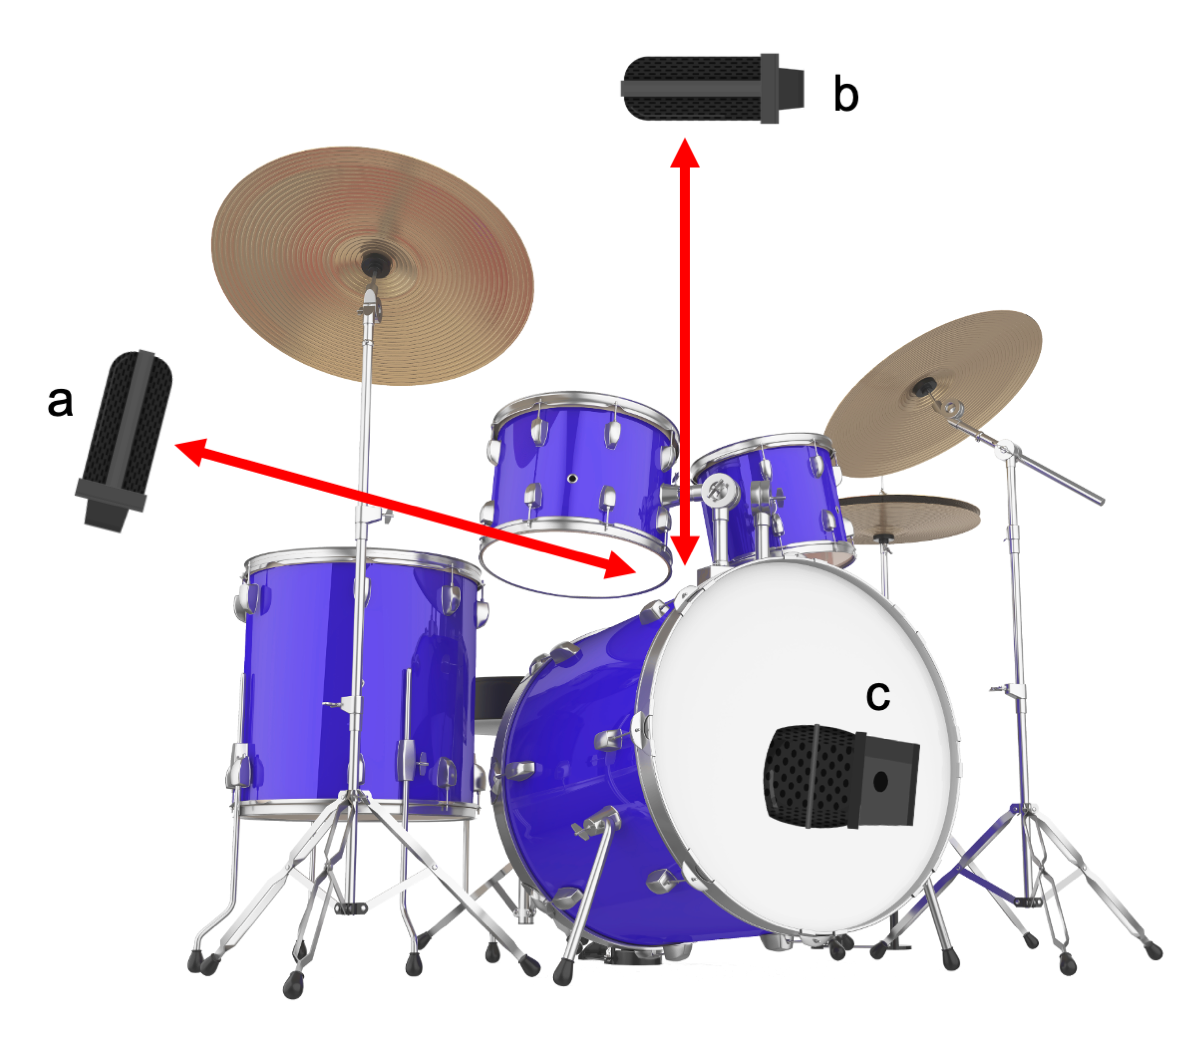 Figure 15.13. Glyn Johns drum recording method with (a) stereo left, (b) stereo right, and (c) kick drum microphones